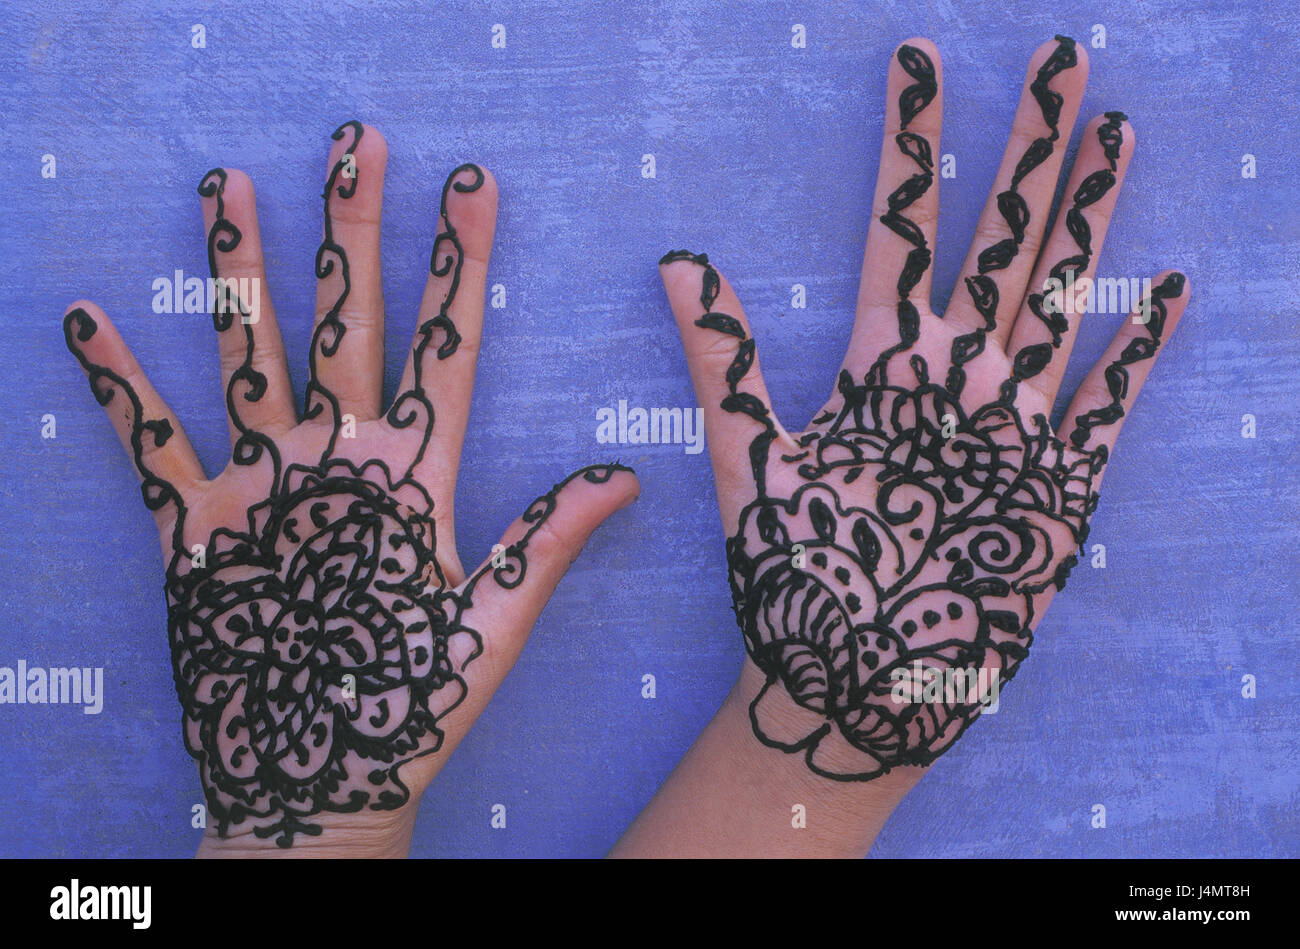 Mehndi Hands With Mobile : India rajasthan woman detail hands henna painting